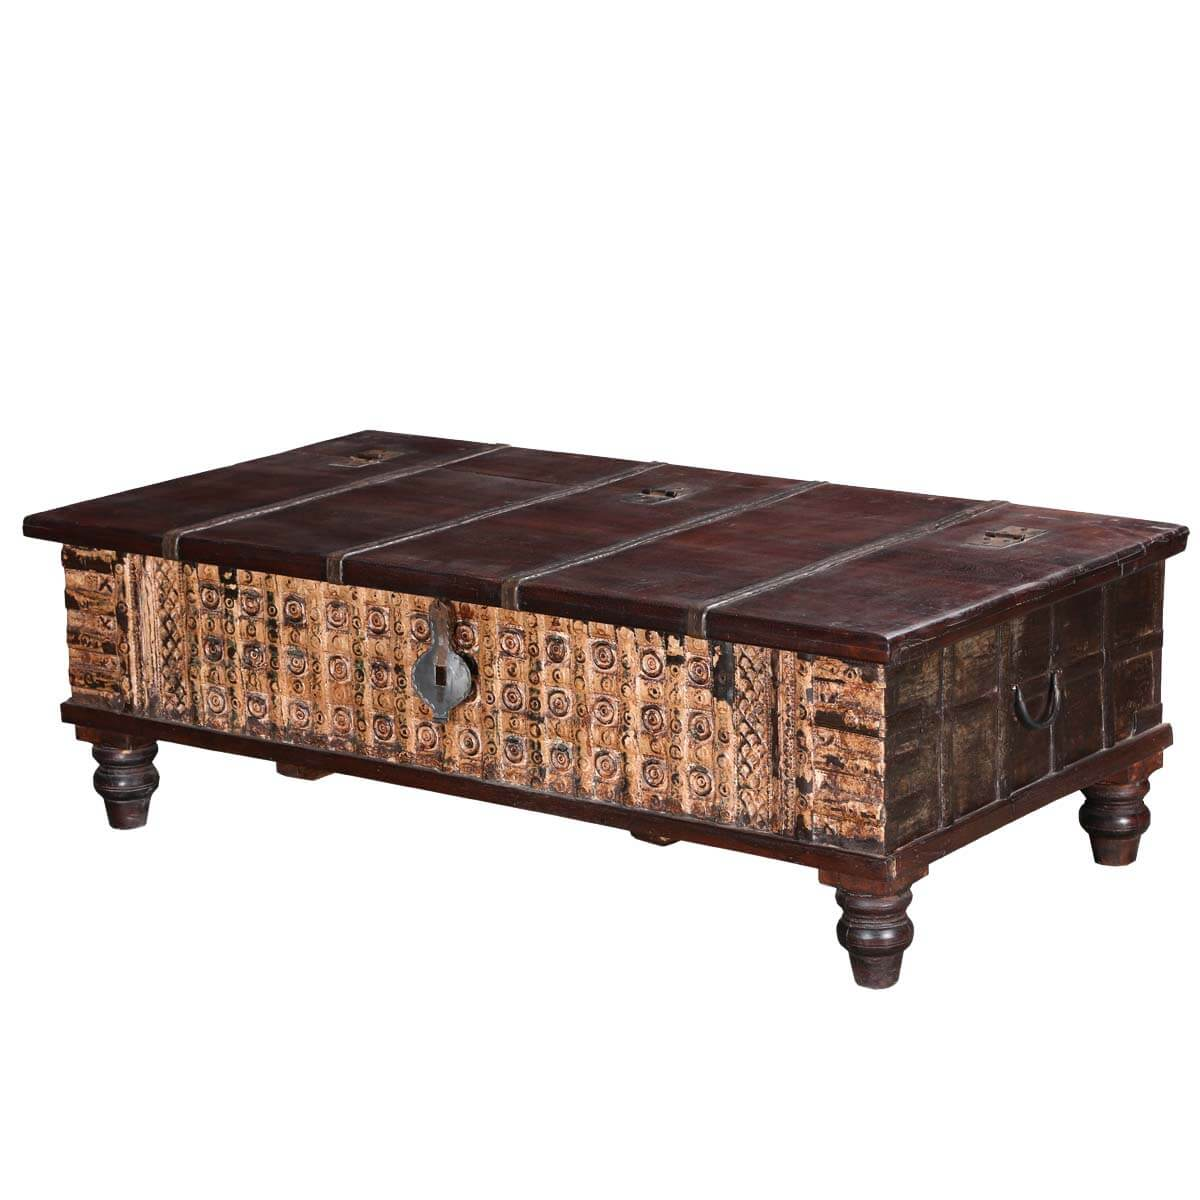 Rustic heritage reclaimed wood standing coffee table chest for Reclaimed coffee table